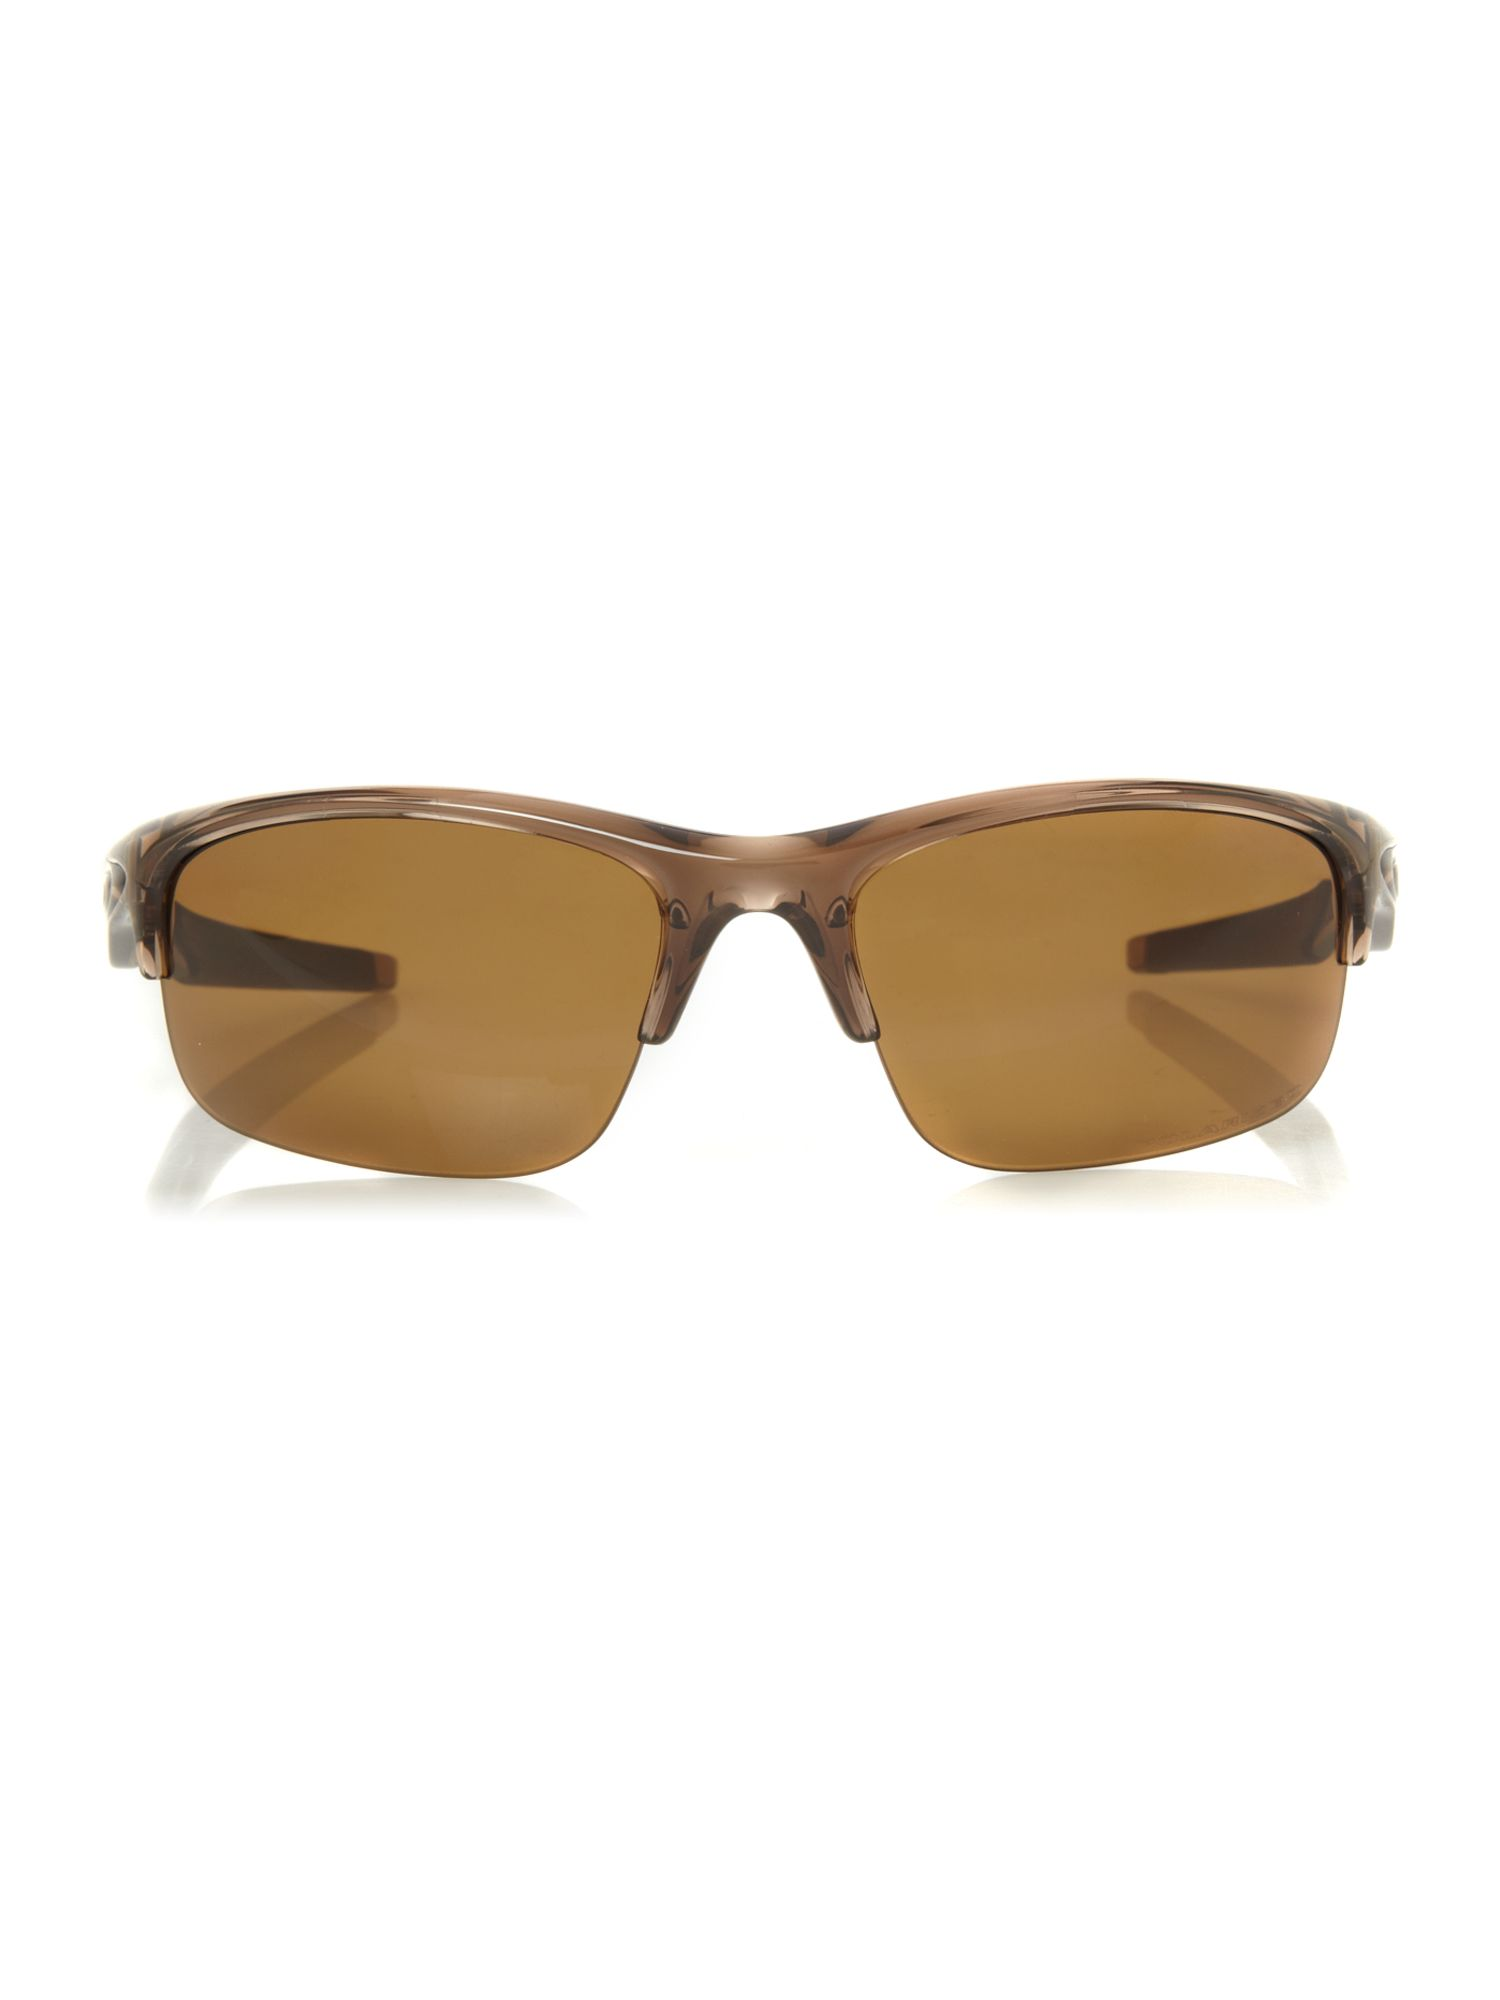 Mens OO9164 Bottle Rocket Polar Brown Sunglasses